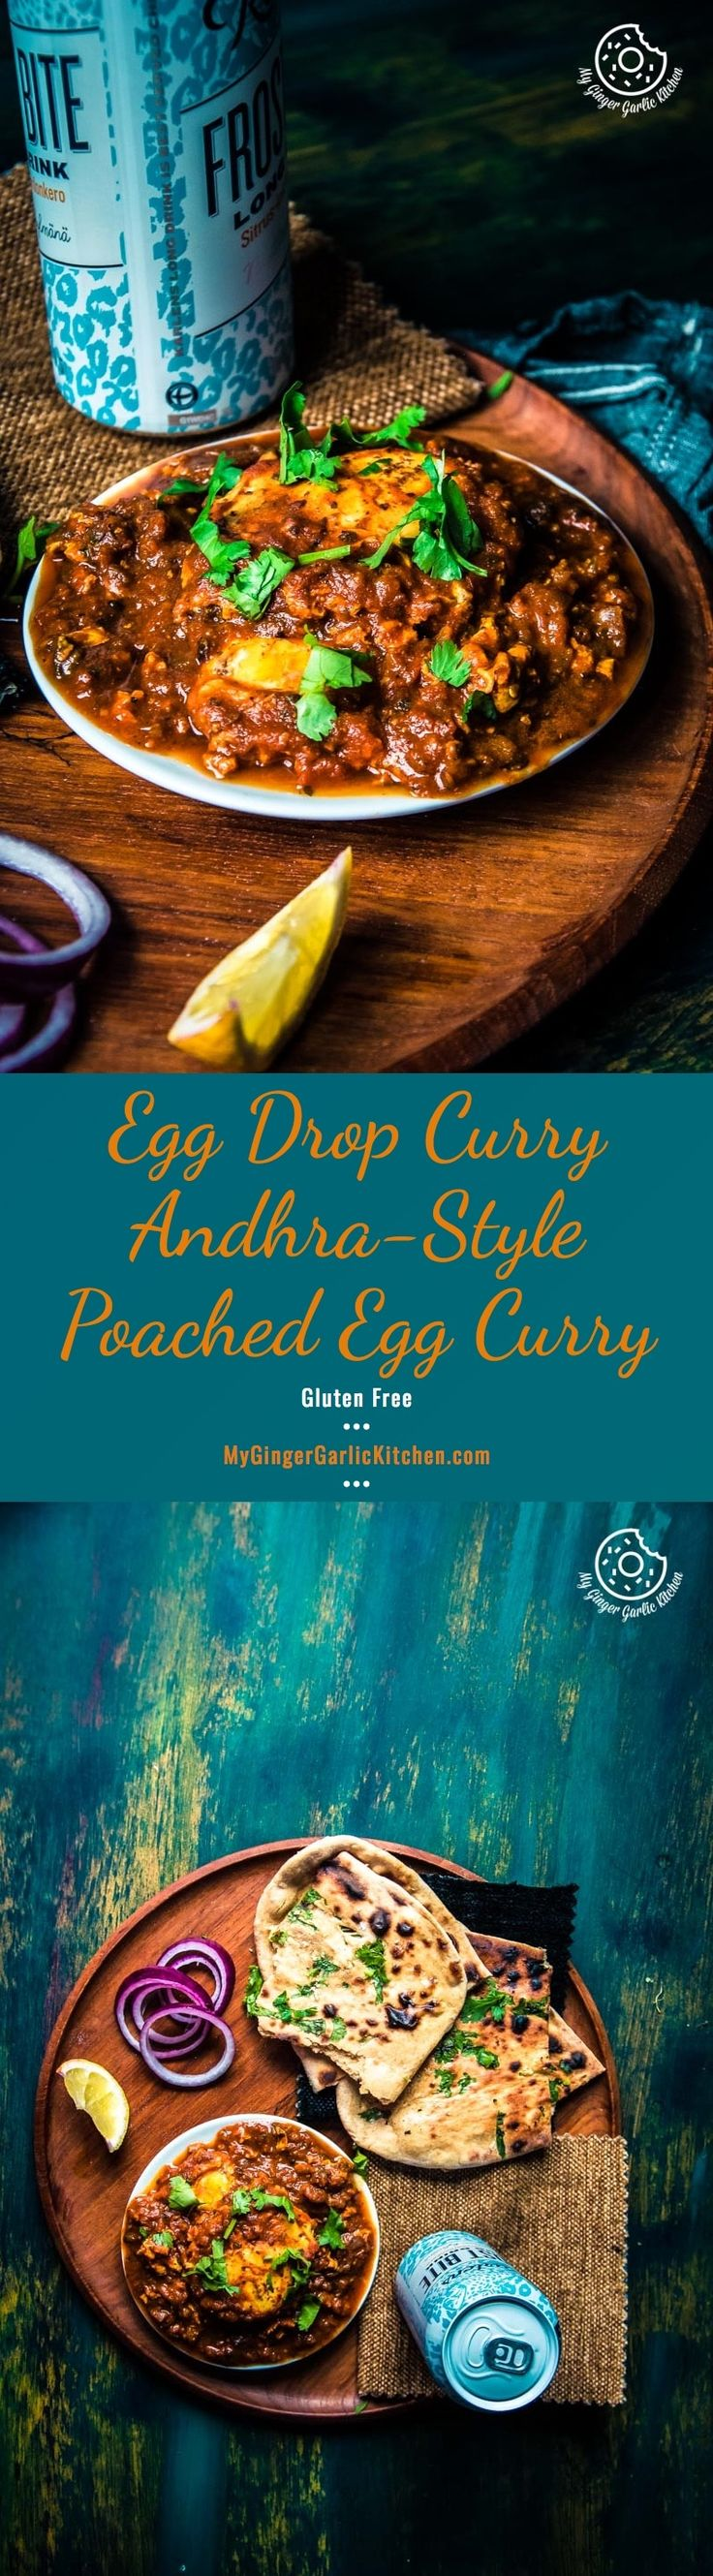 Egg Drop Curry   Andhra-Style Poached Egg Curry   mygingergarlickitchen.com/ @anupama_dreams